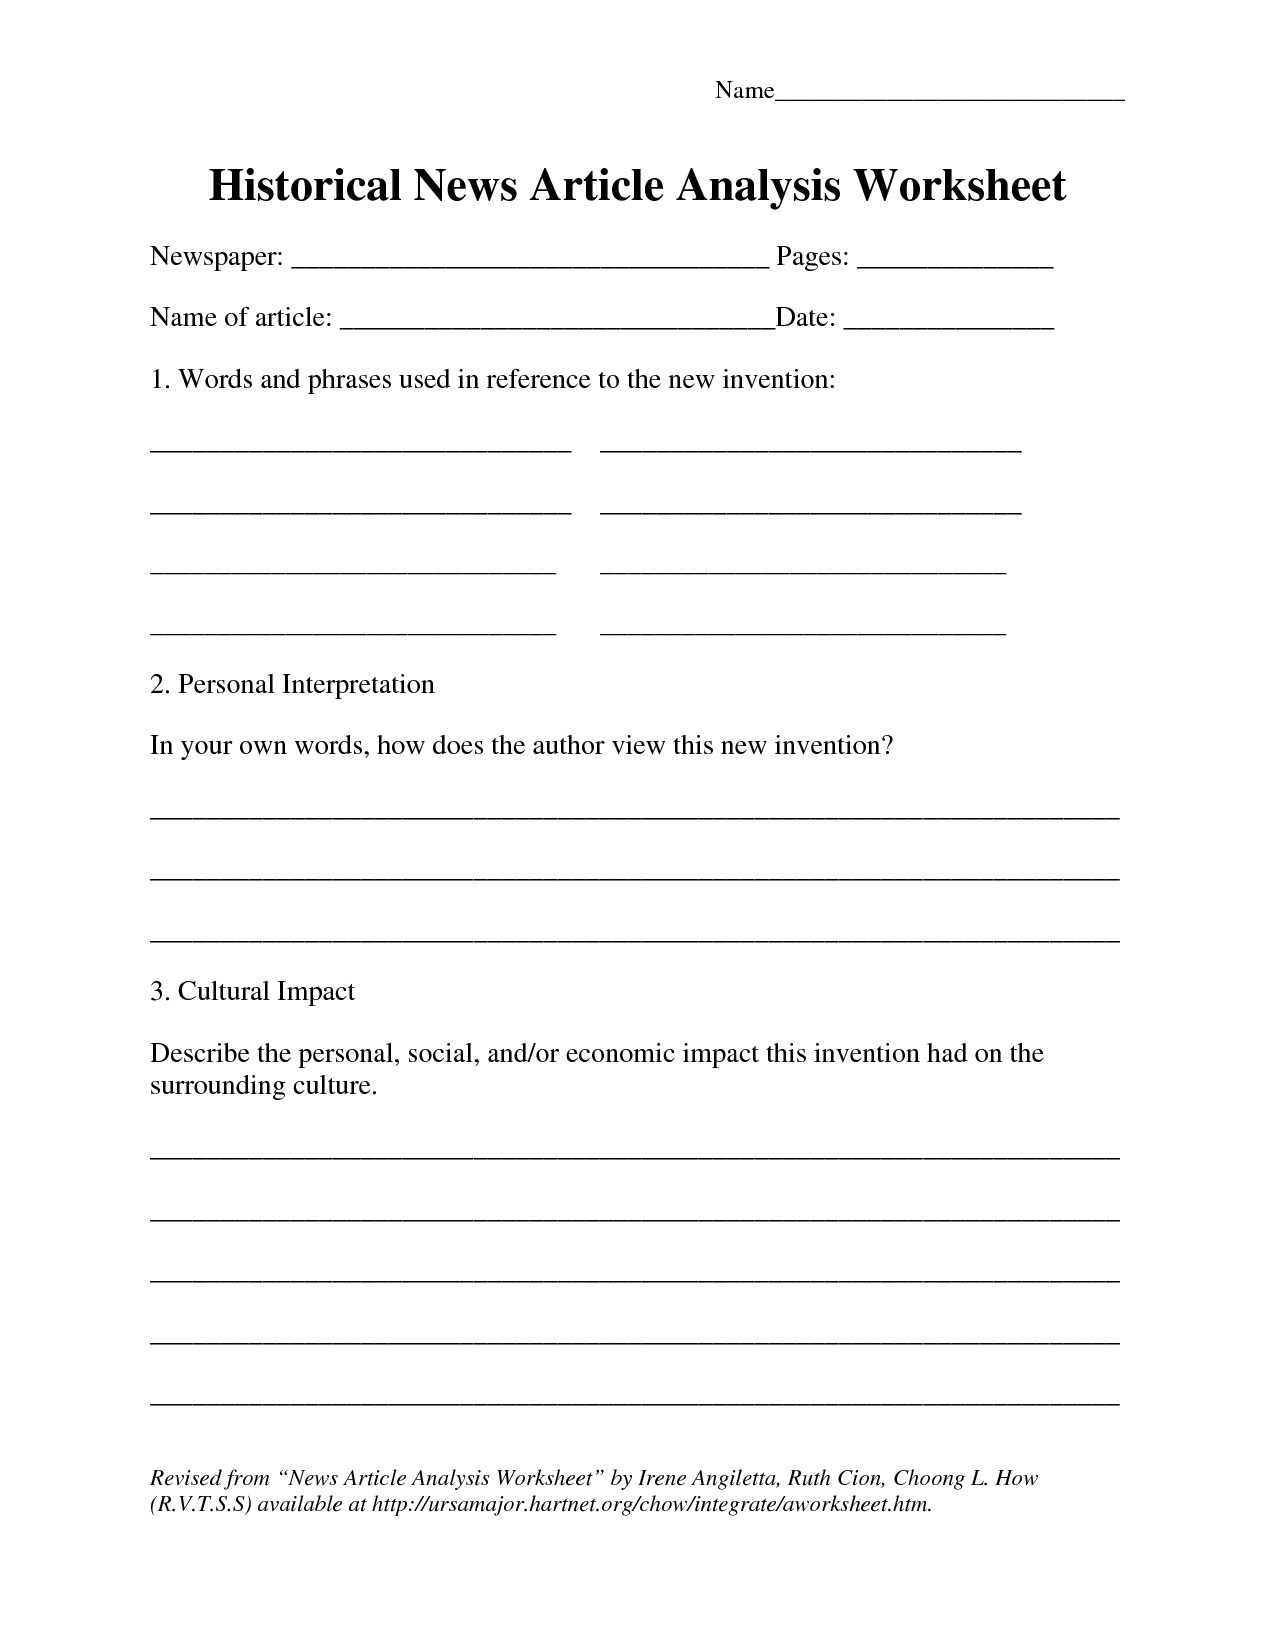 Article Analysis Worksheet High School Current event Worksheet